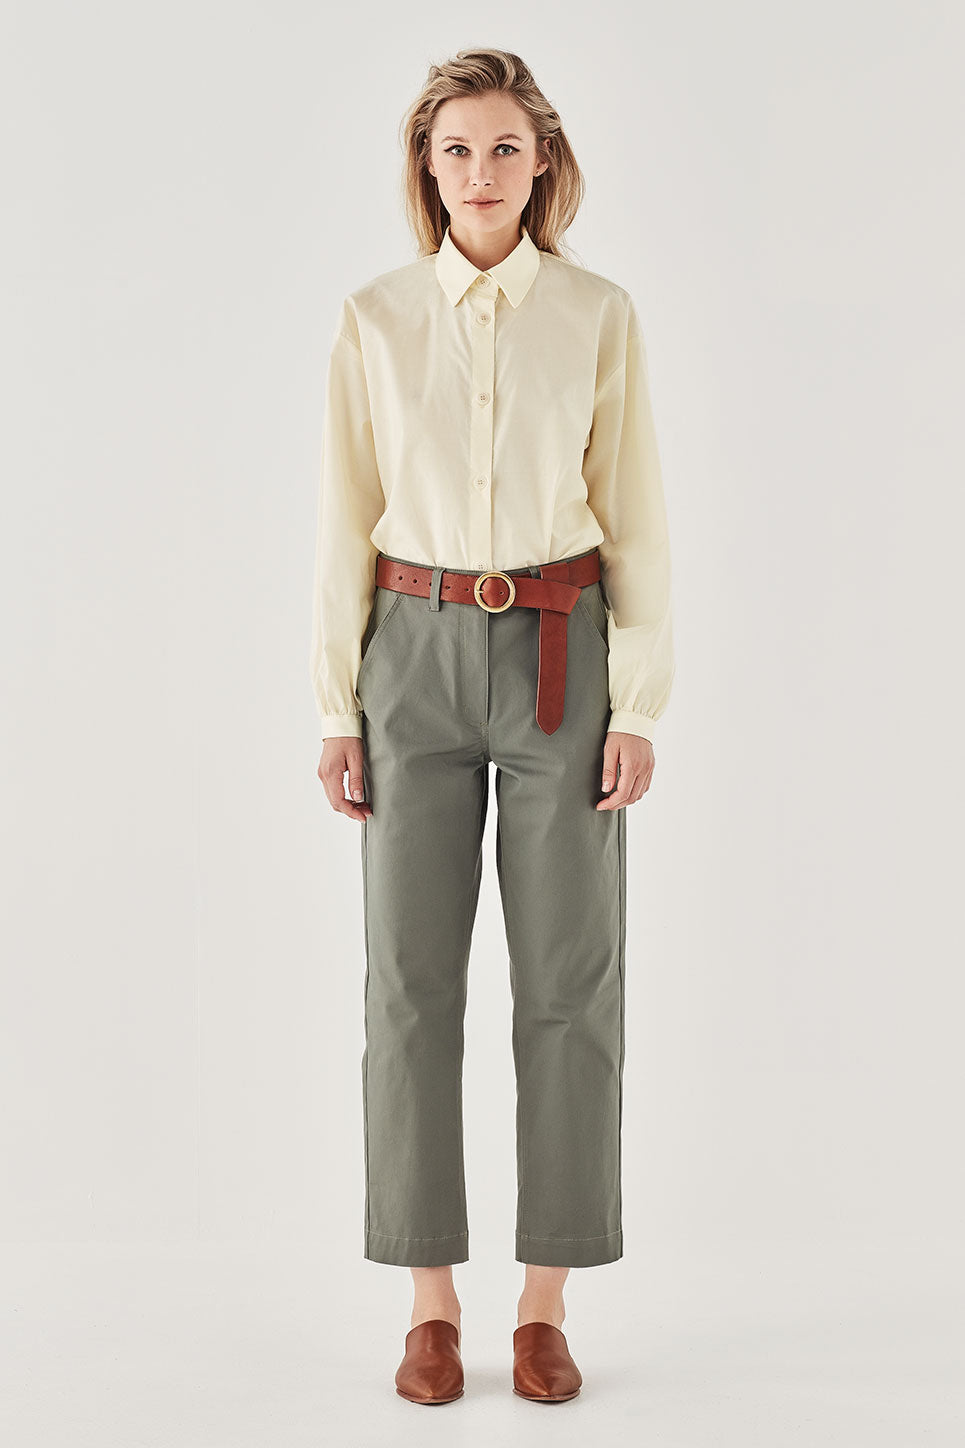 The Andaman Shirt in Lemon